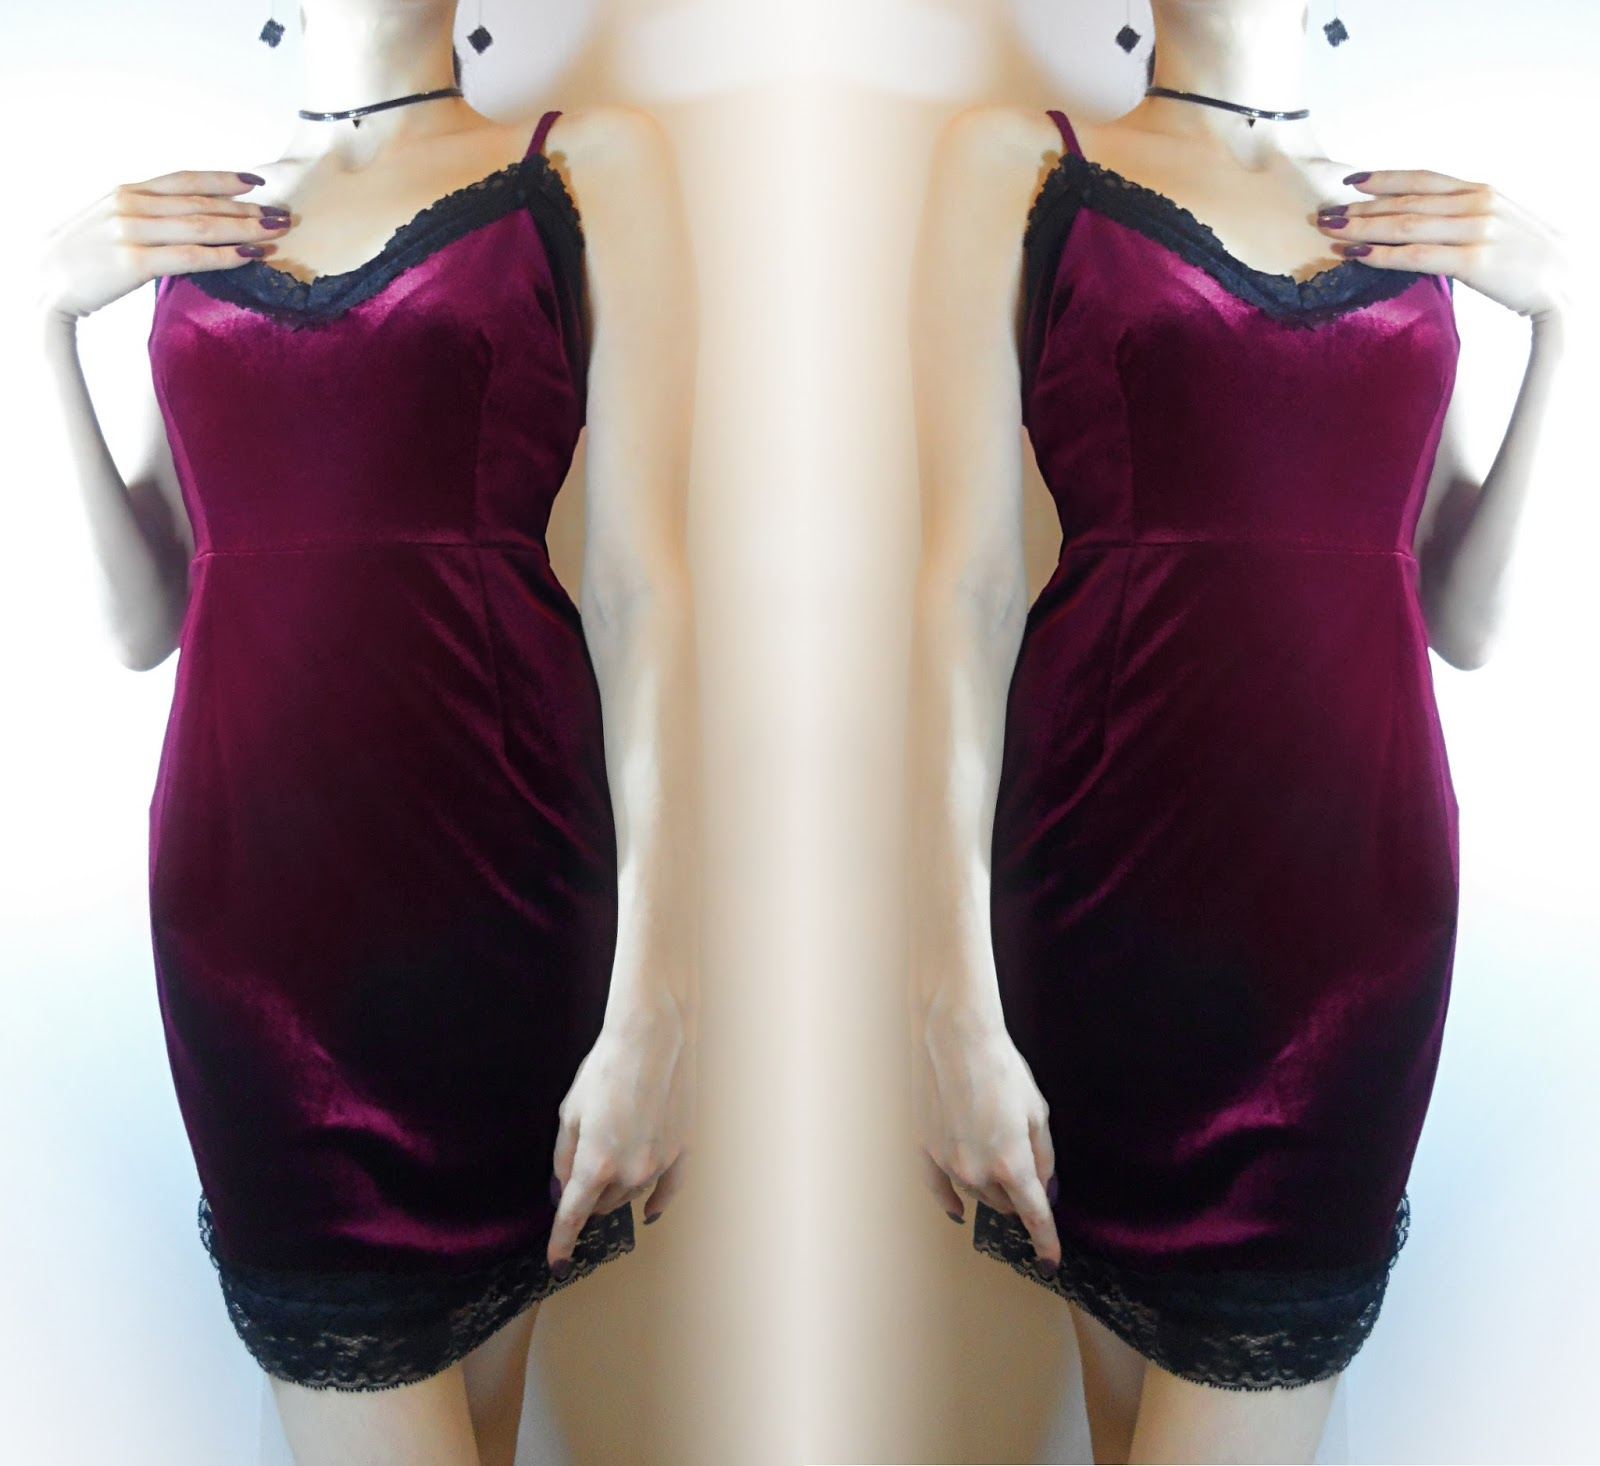 bodycon velvet 90s goth grunge dress ootd fashion liz breygel fbloggers